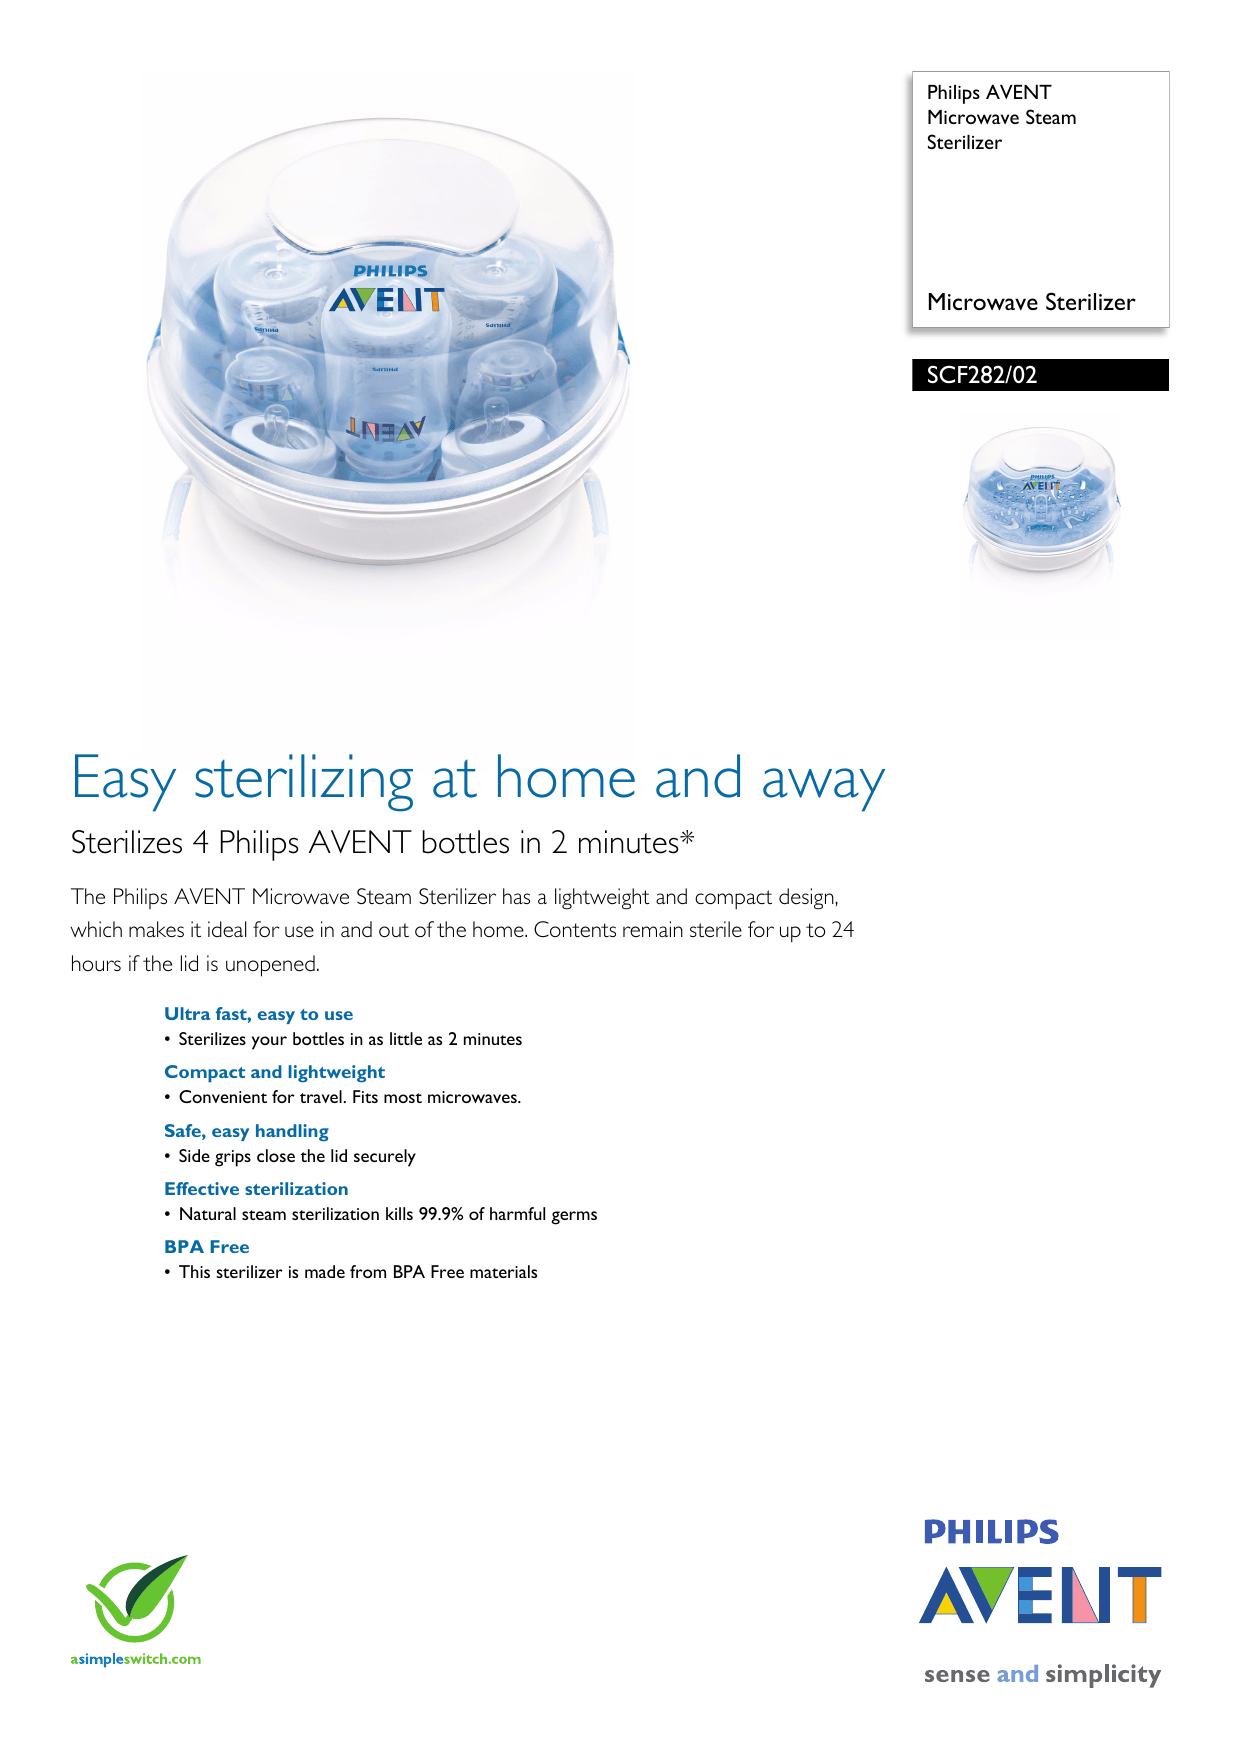 philips avent microwave steam